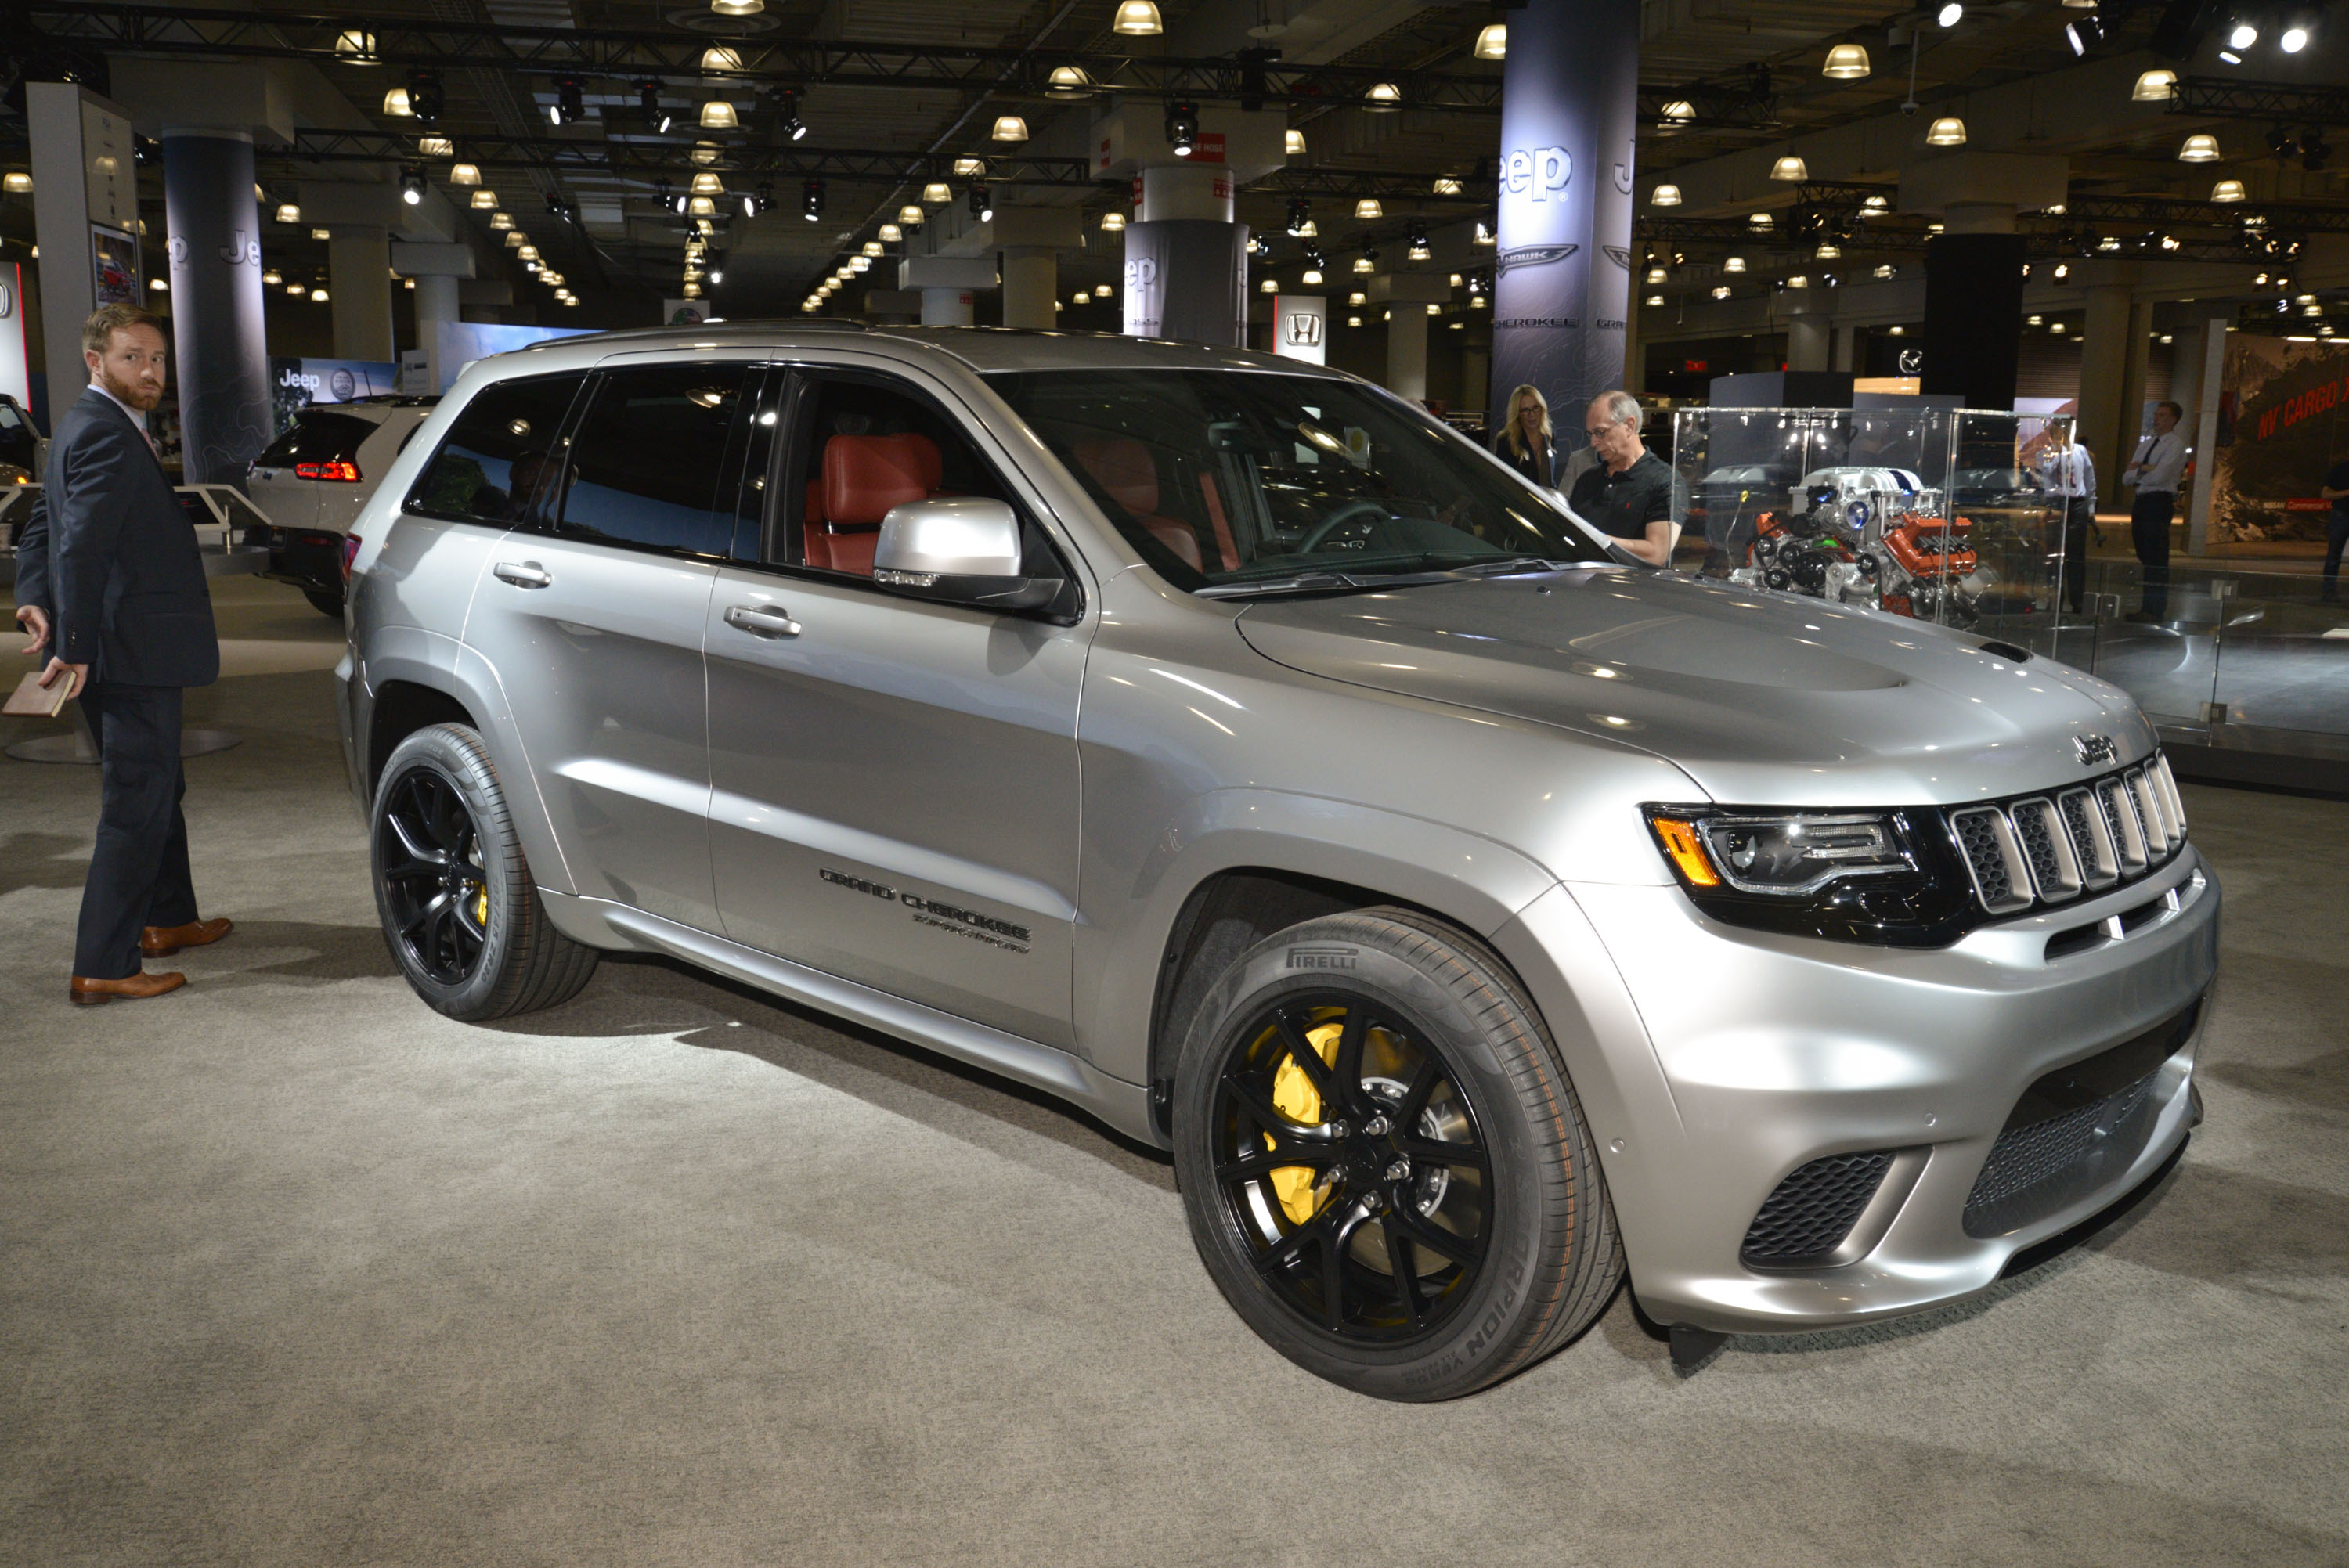 2018 jeep grand cherokee trackhawk review - top speed